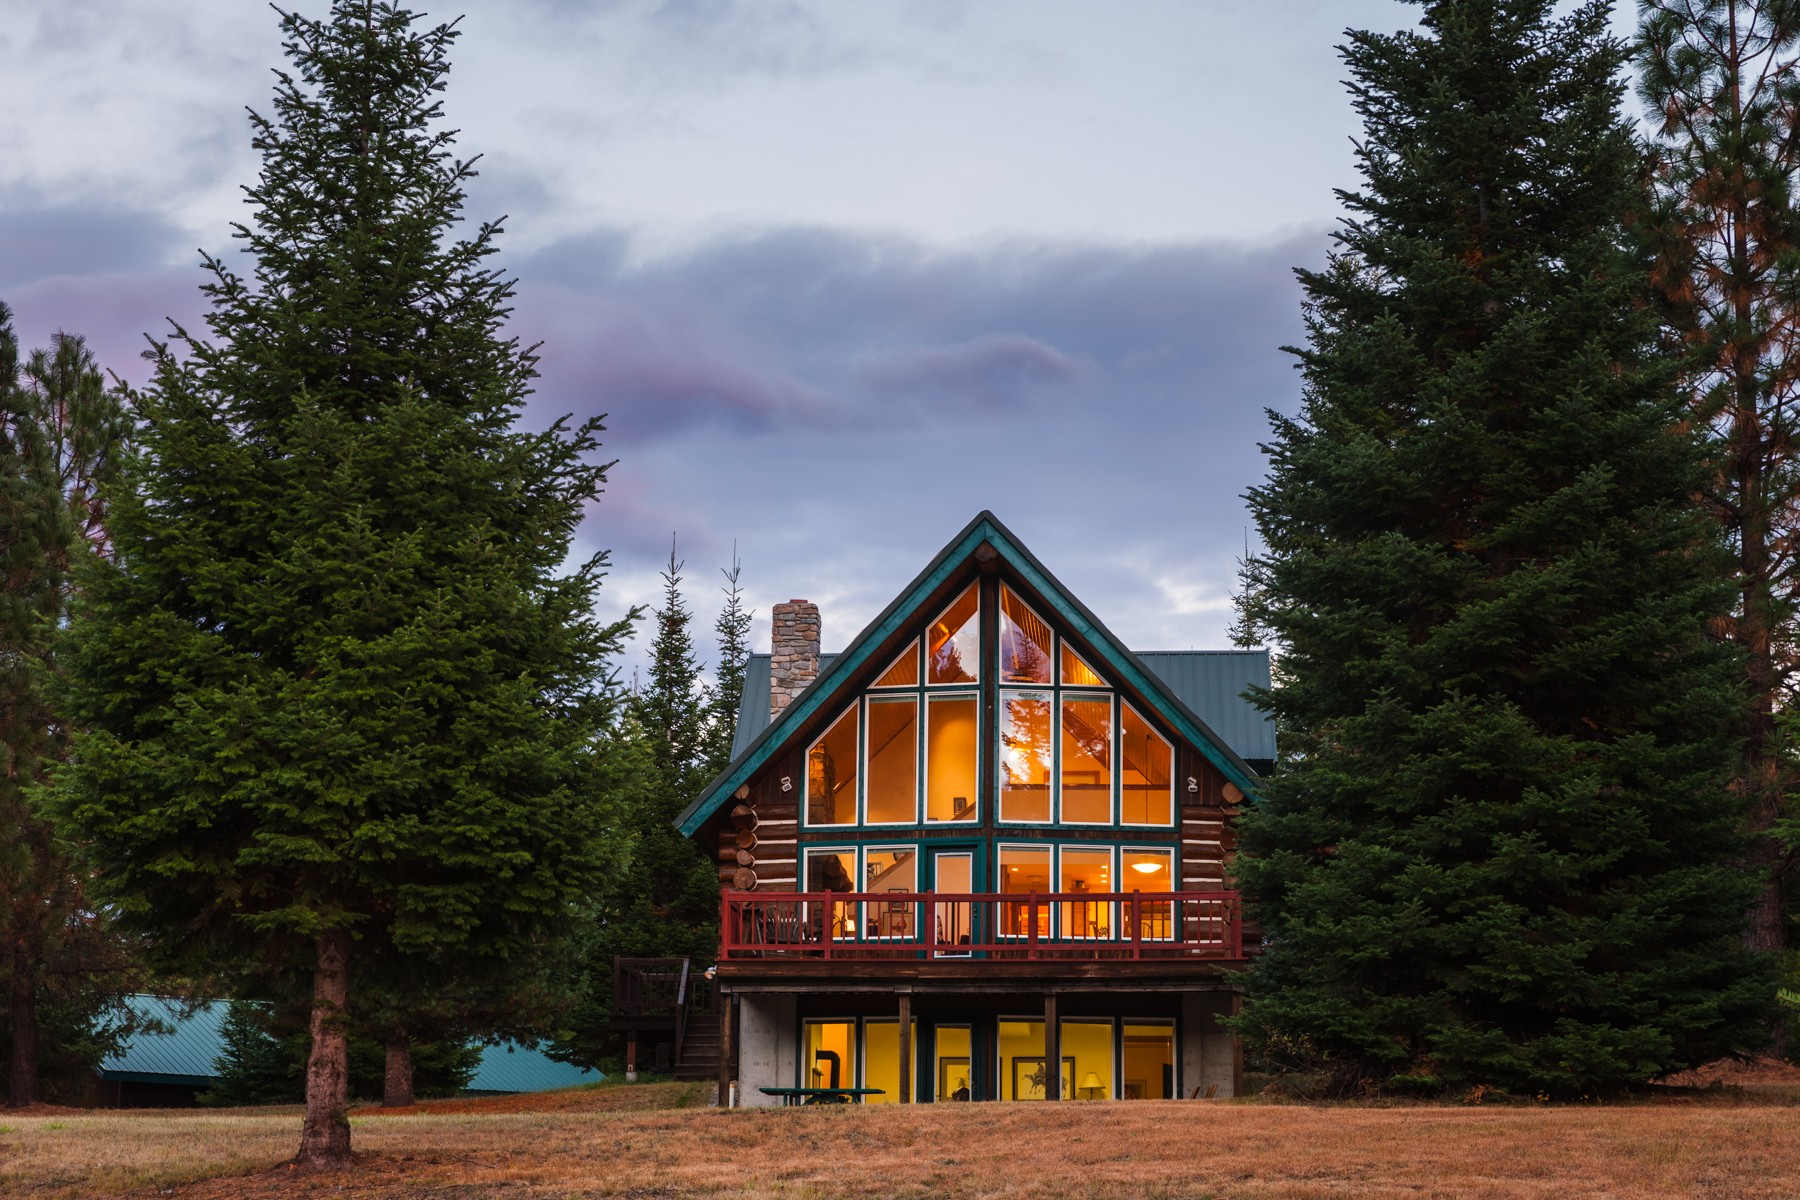 Single Family Homes for Sale at 290 Whitepine Creek Road Trout Creek, Montana 59874 United States